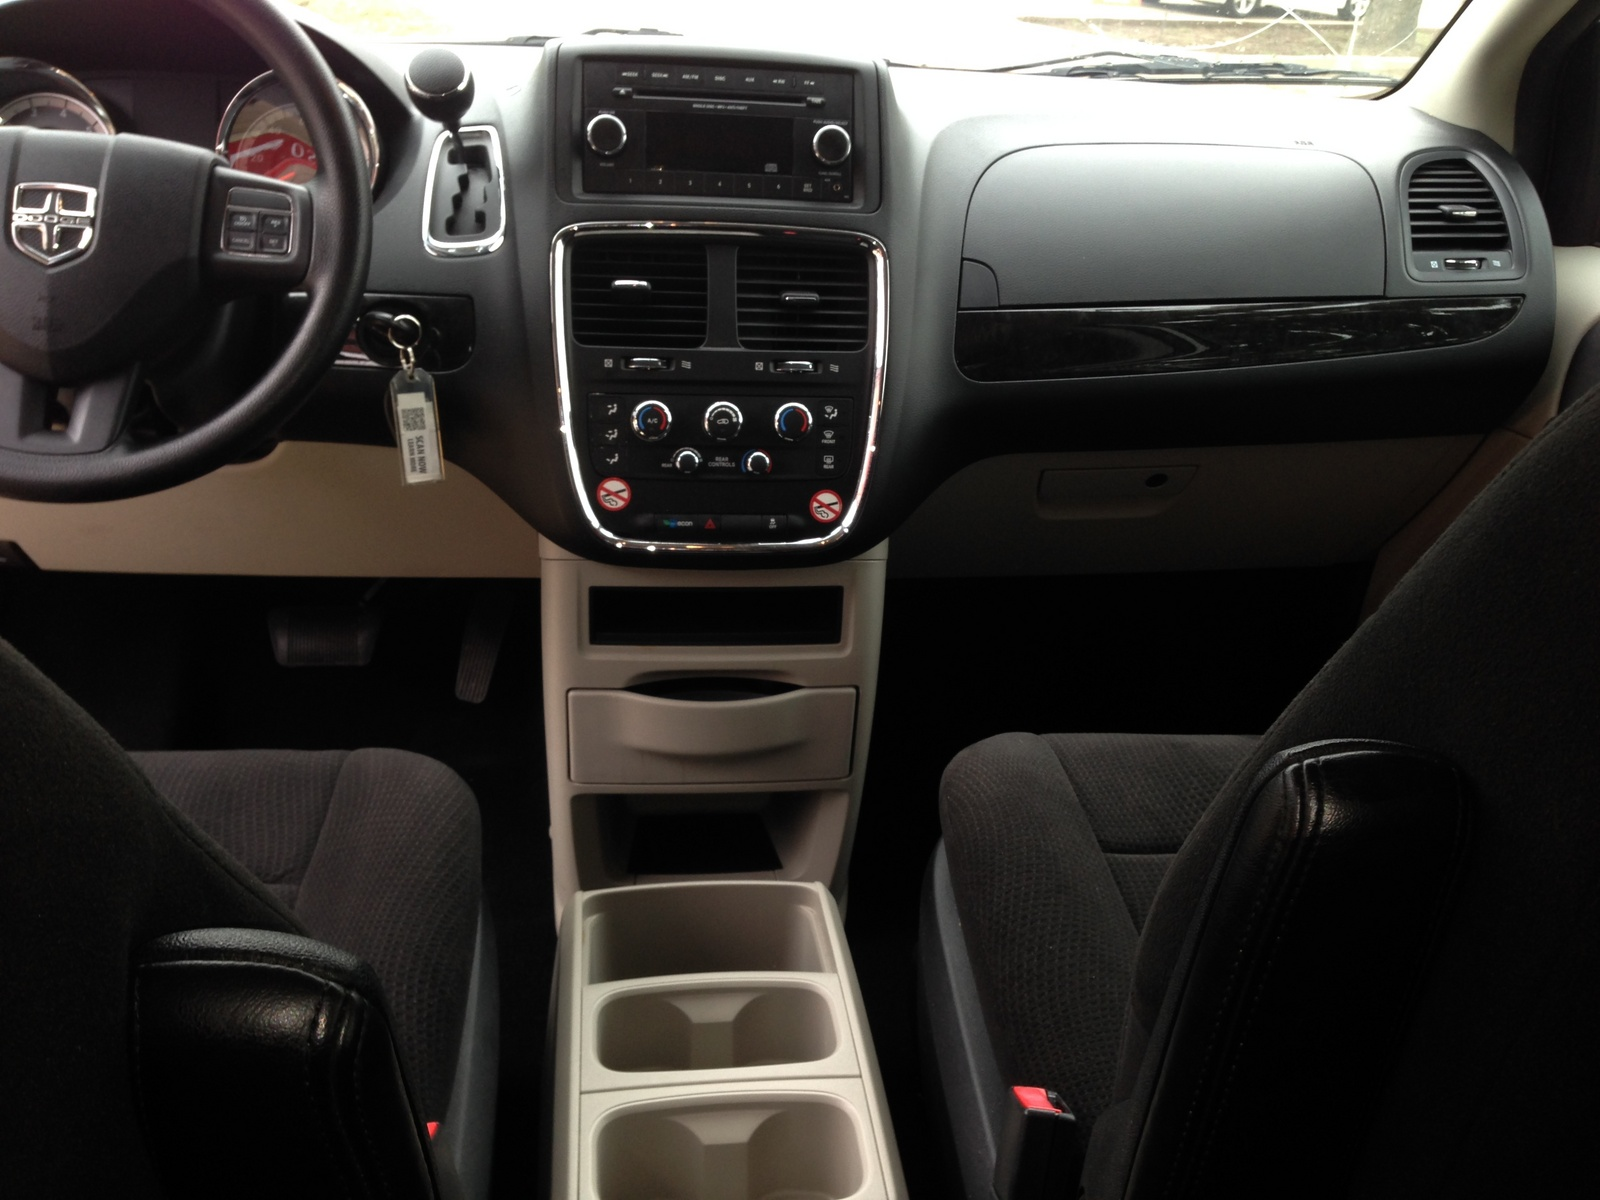 2013 Dodge Grand Caravan Interior Pictures Cargurus